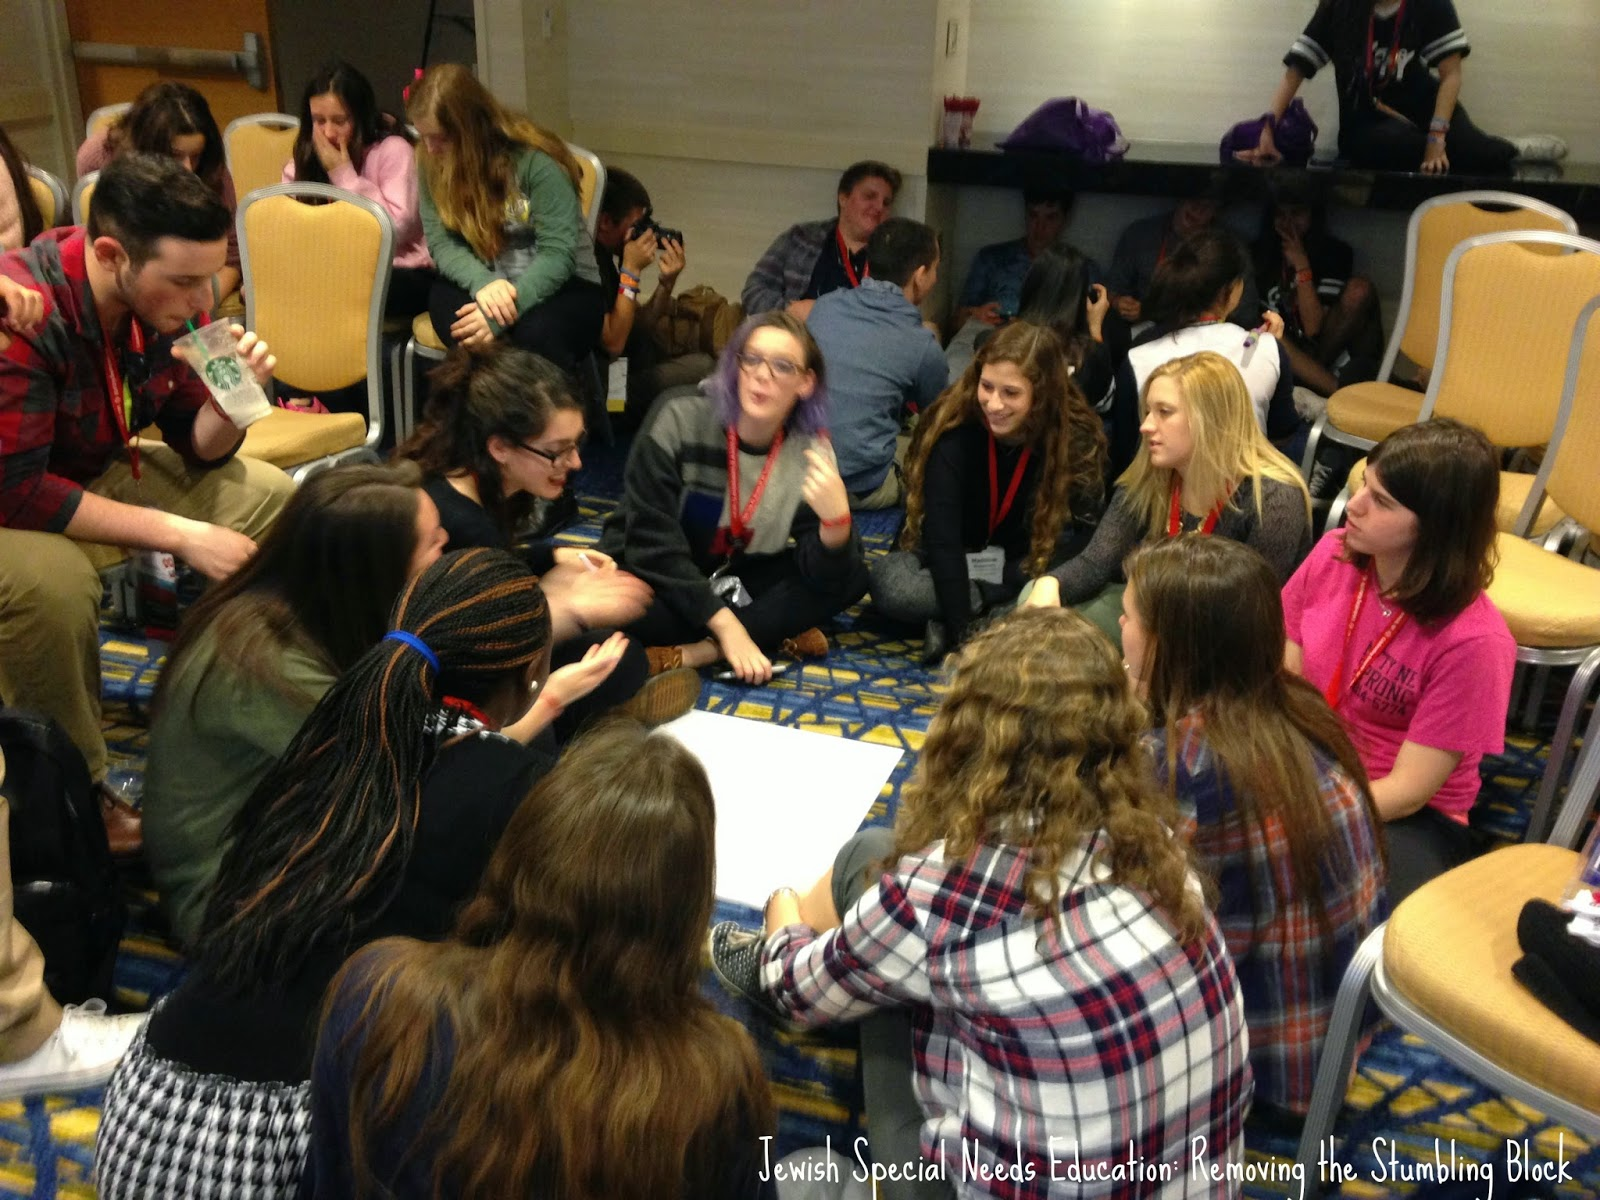 NFTY teens studying disability inclusion, Removing the Stumbling Block